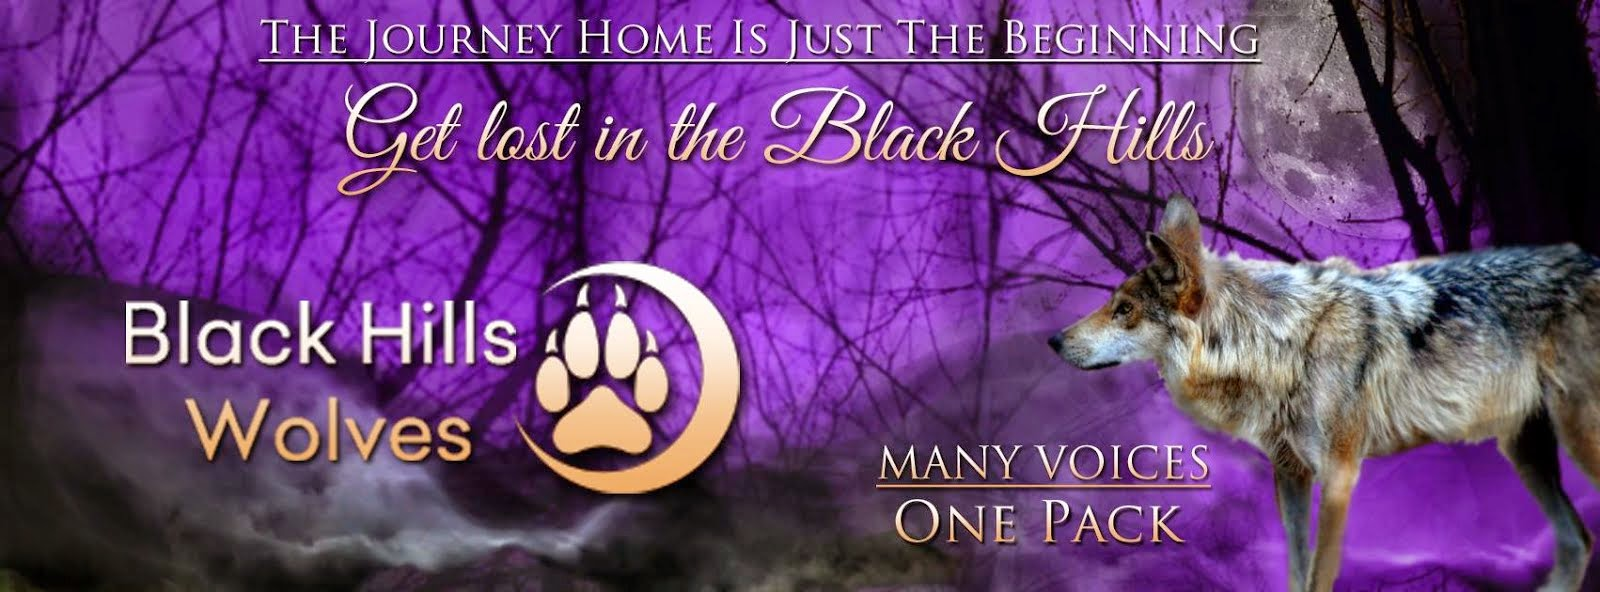 Fall in love with The Black Hills Wolves